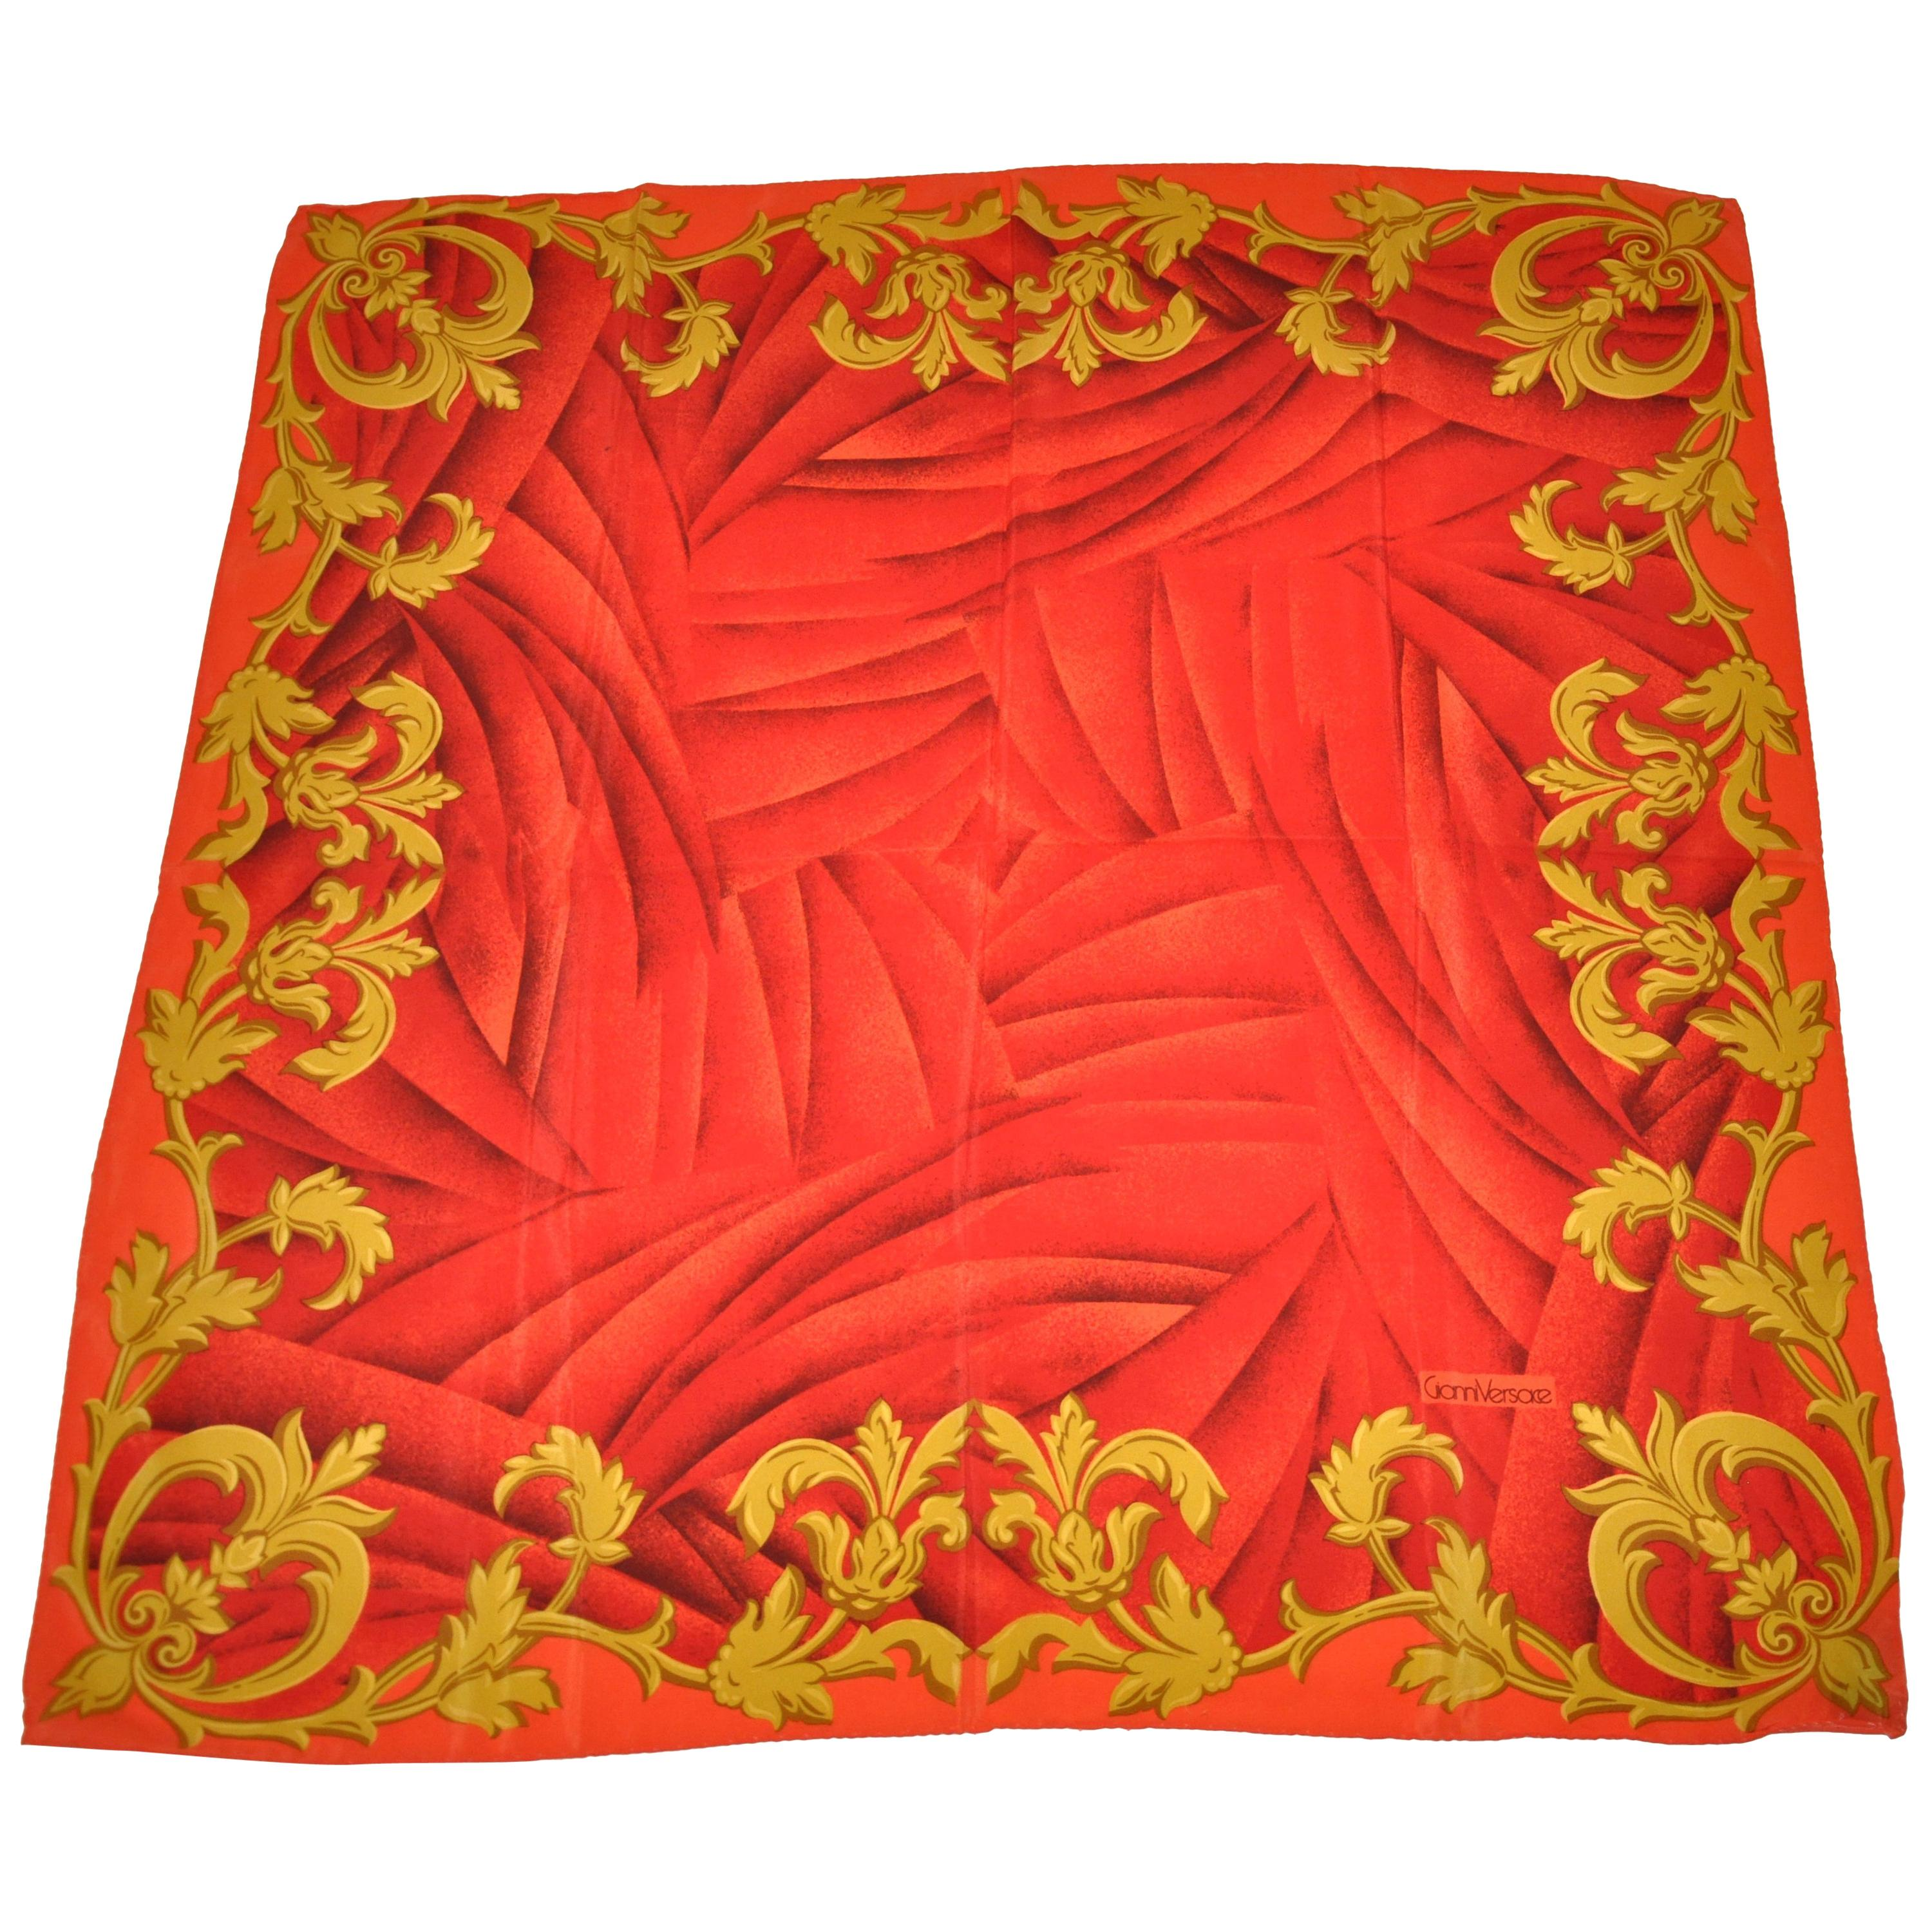 Gianni Versace Iconic Signature Whimsical Silk Scarf